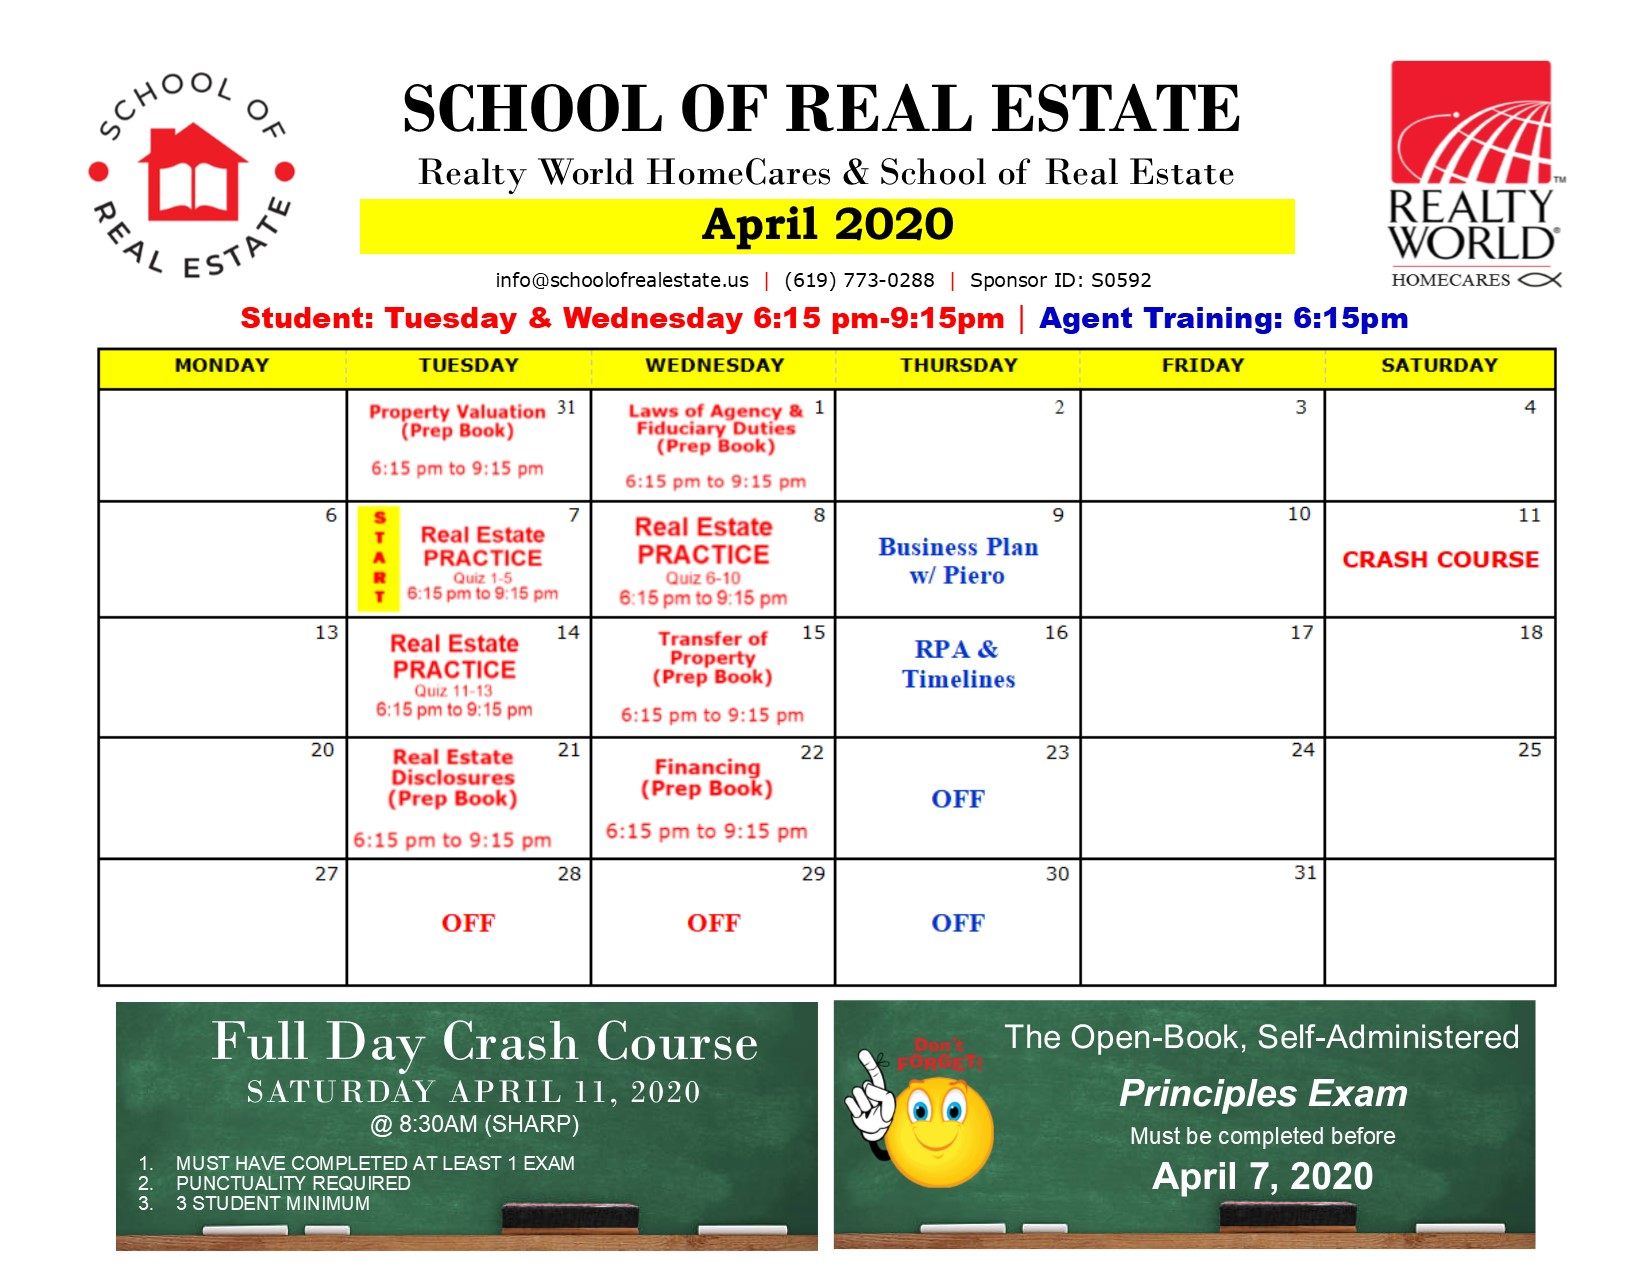 SchoolOfRealEstate_Newsletter_2020April